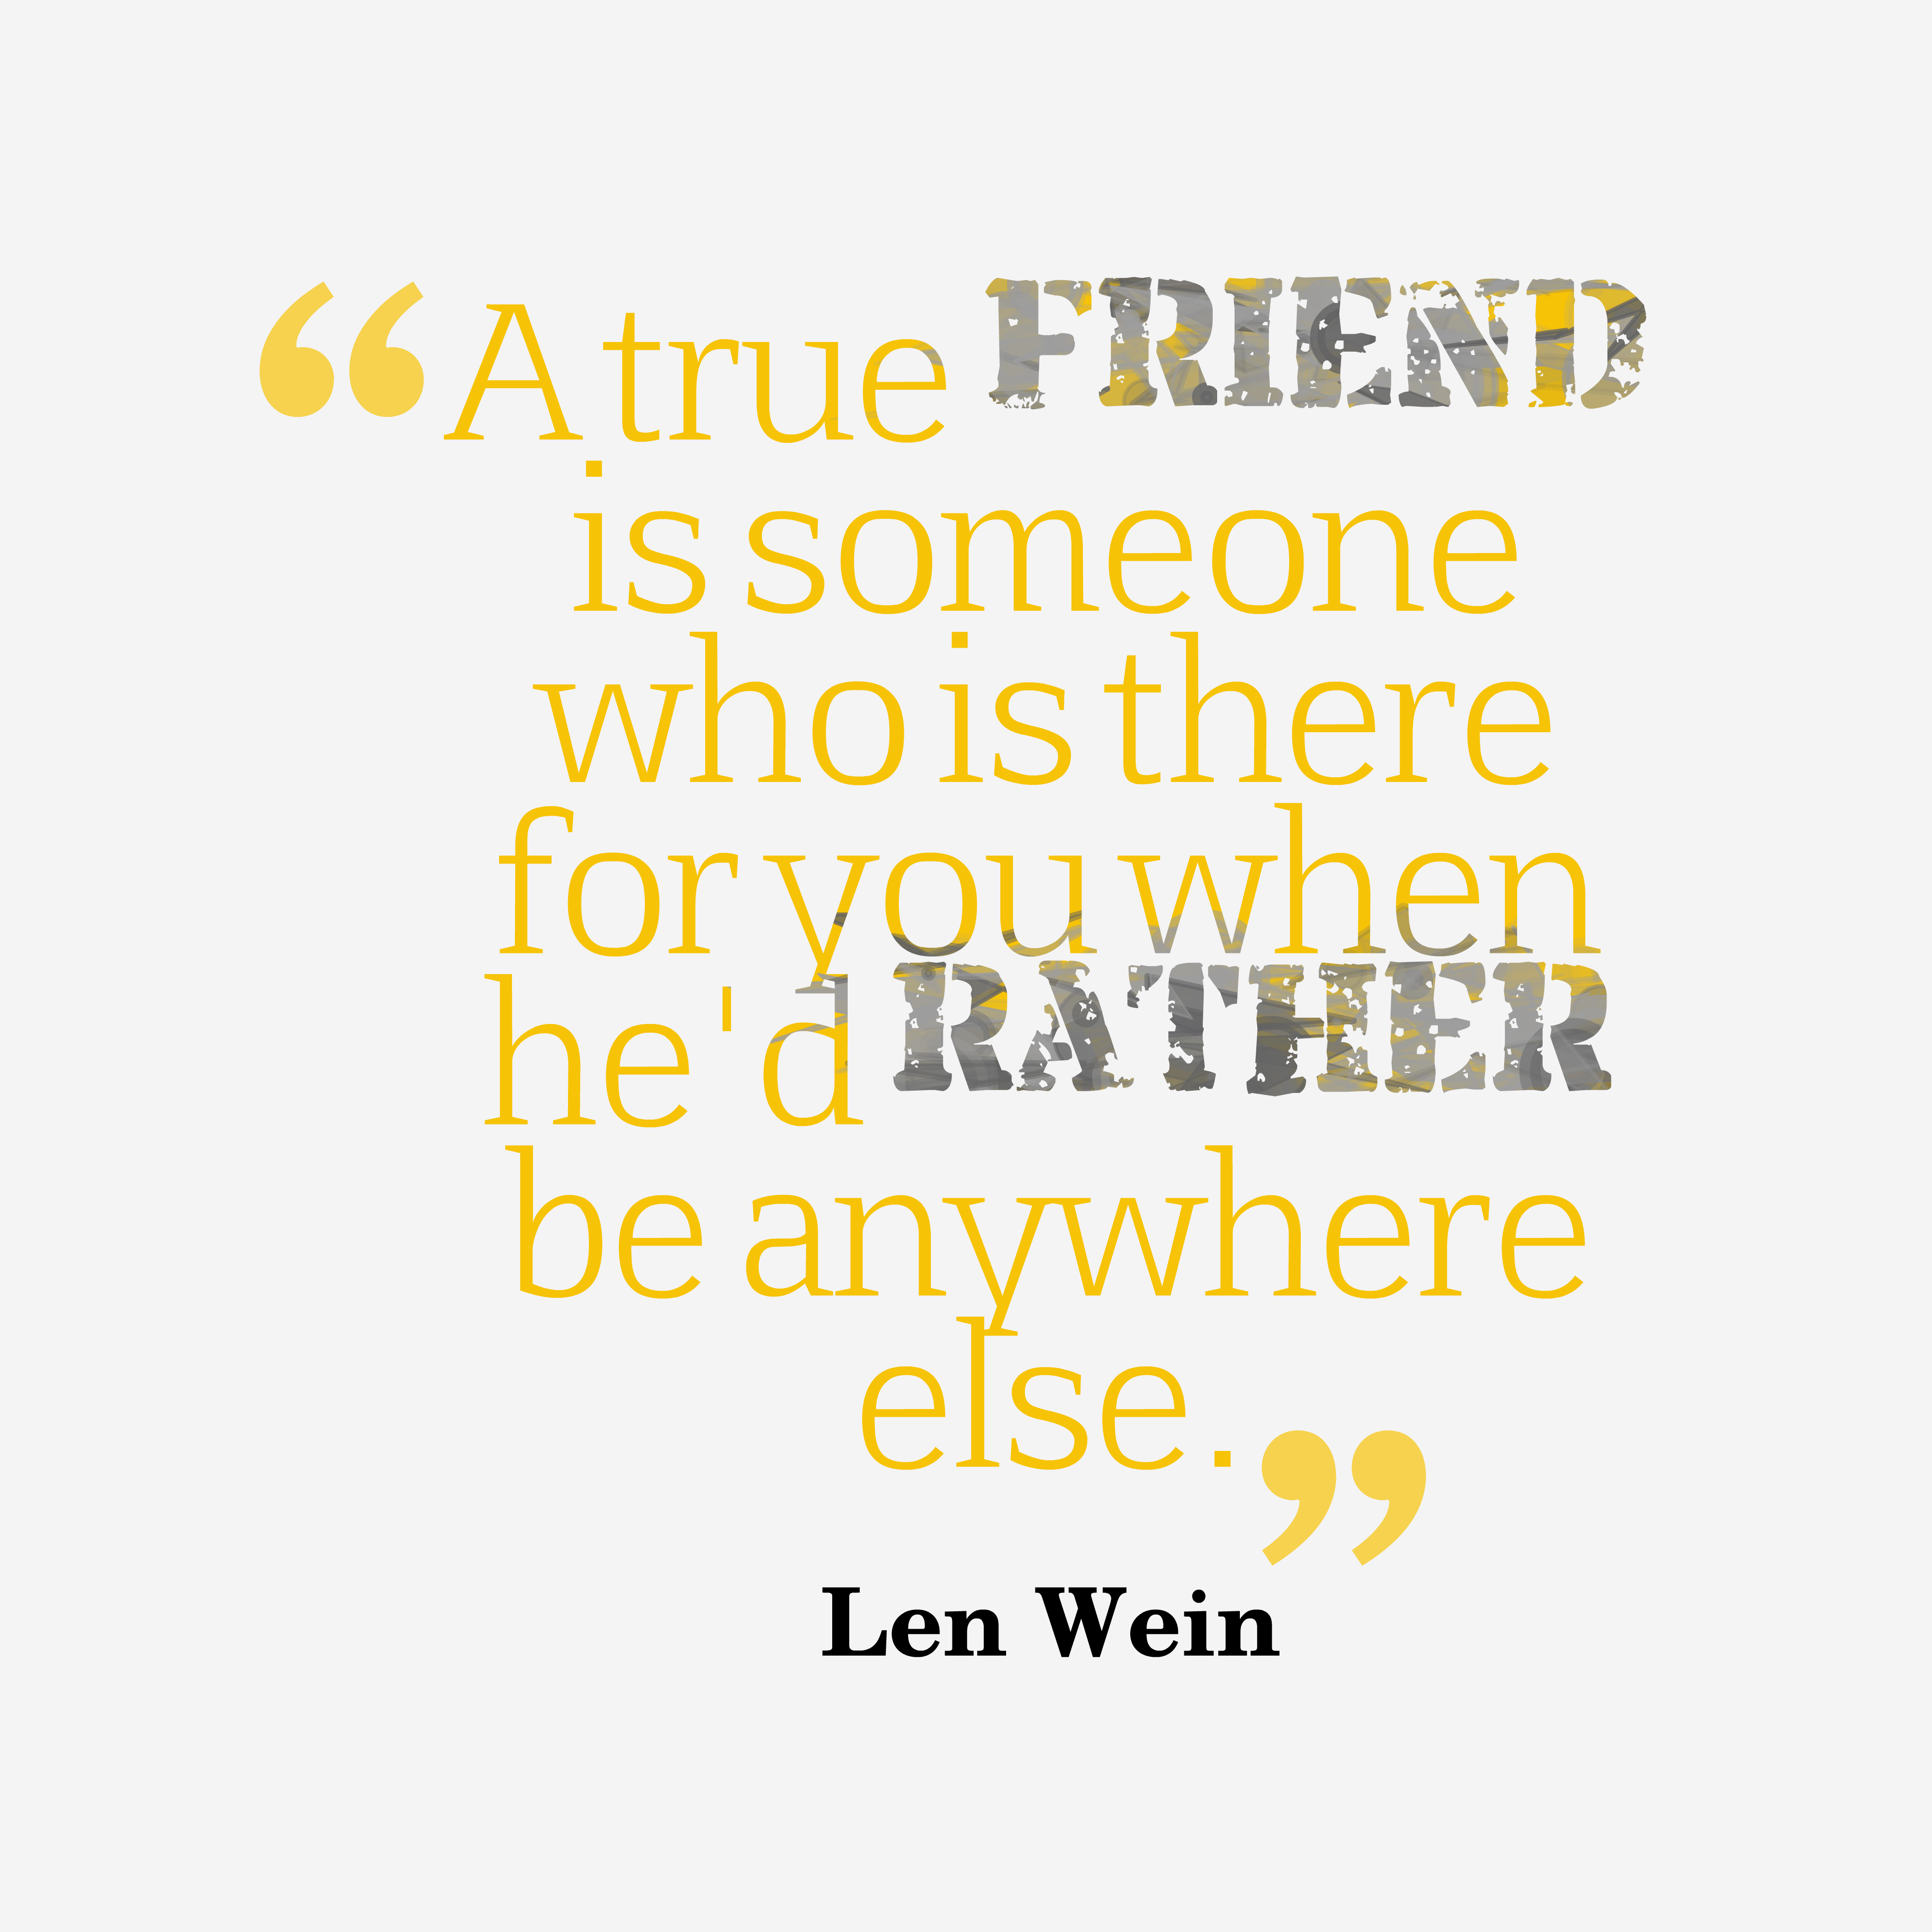 Quotes image of A true friend is someone who is there for you when he'd rather be anywhere else.